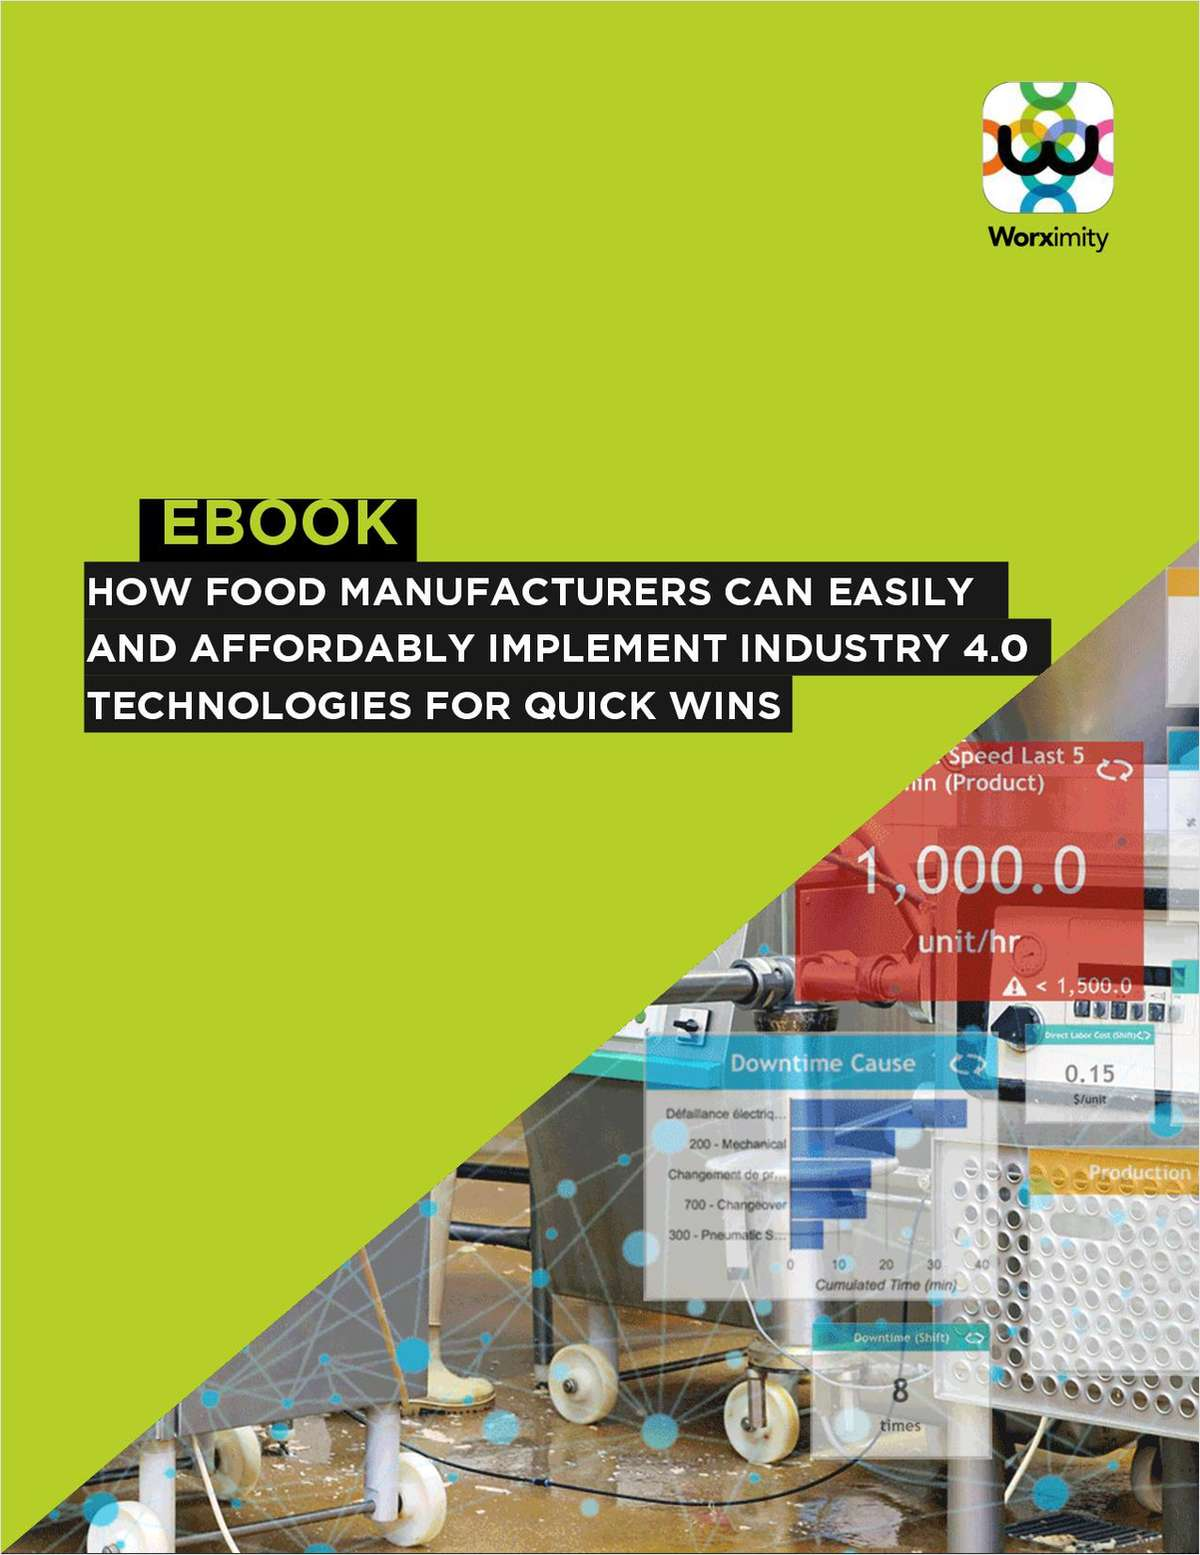 How Food Manufacturers can Easily and Affordably Implement Industry 4.0 Technologies for Quick Wins